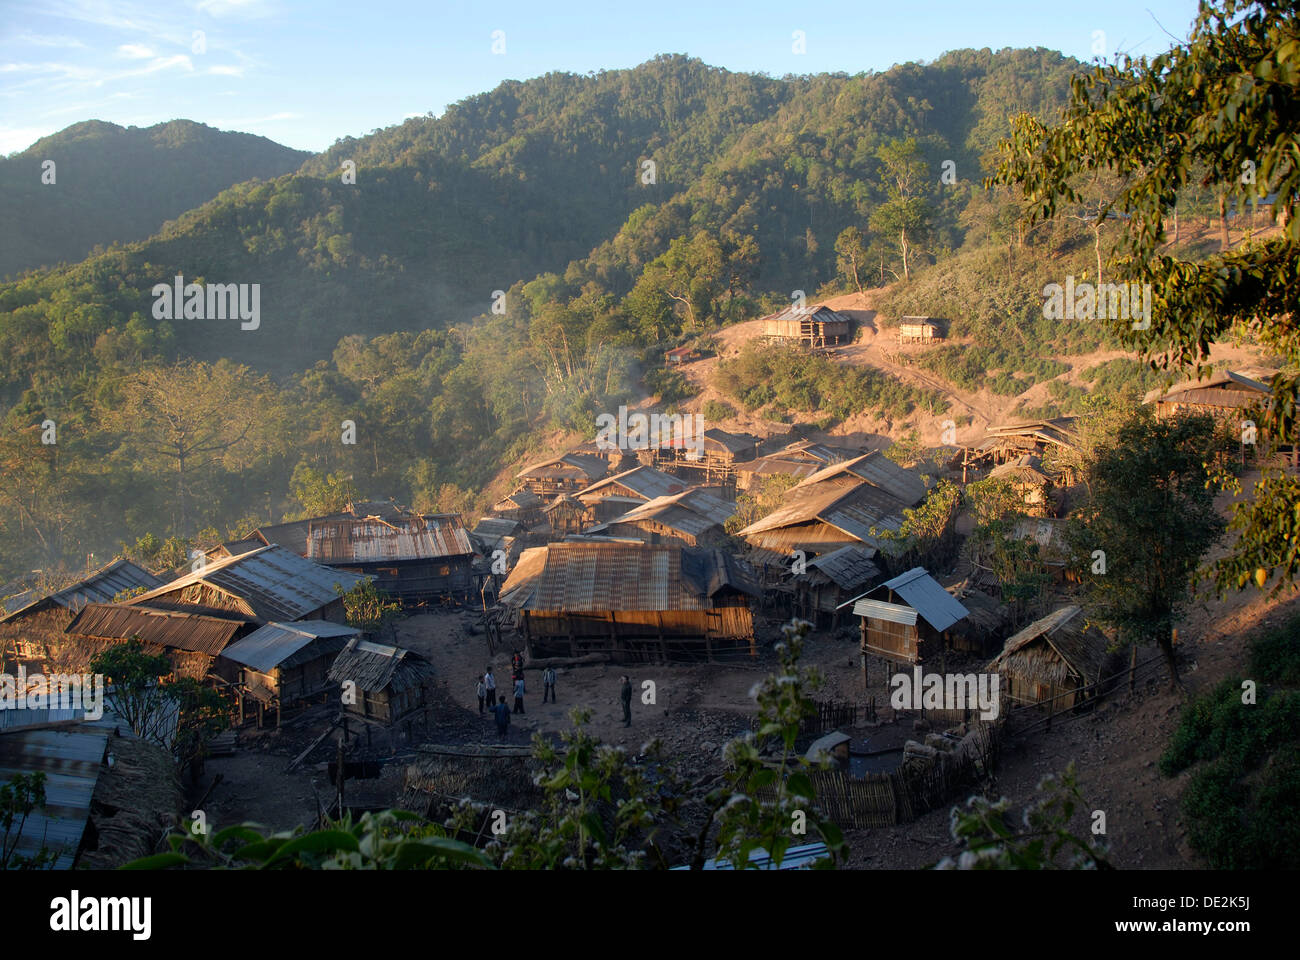 Huts with corrugated iron roofs of the Akha Phixor ethnic group in the mountains, Ban Moxoxang village Stock Photo